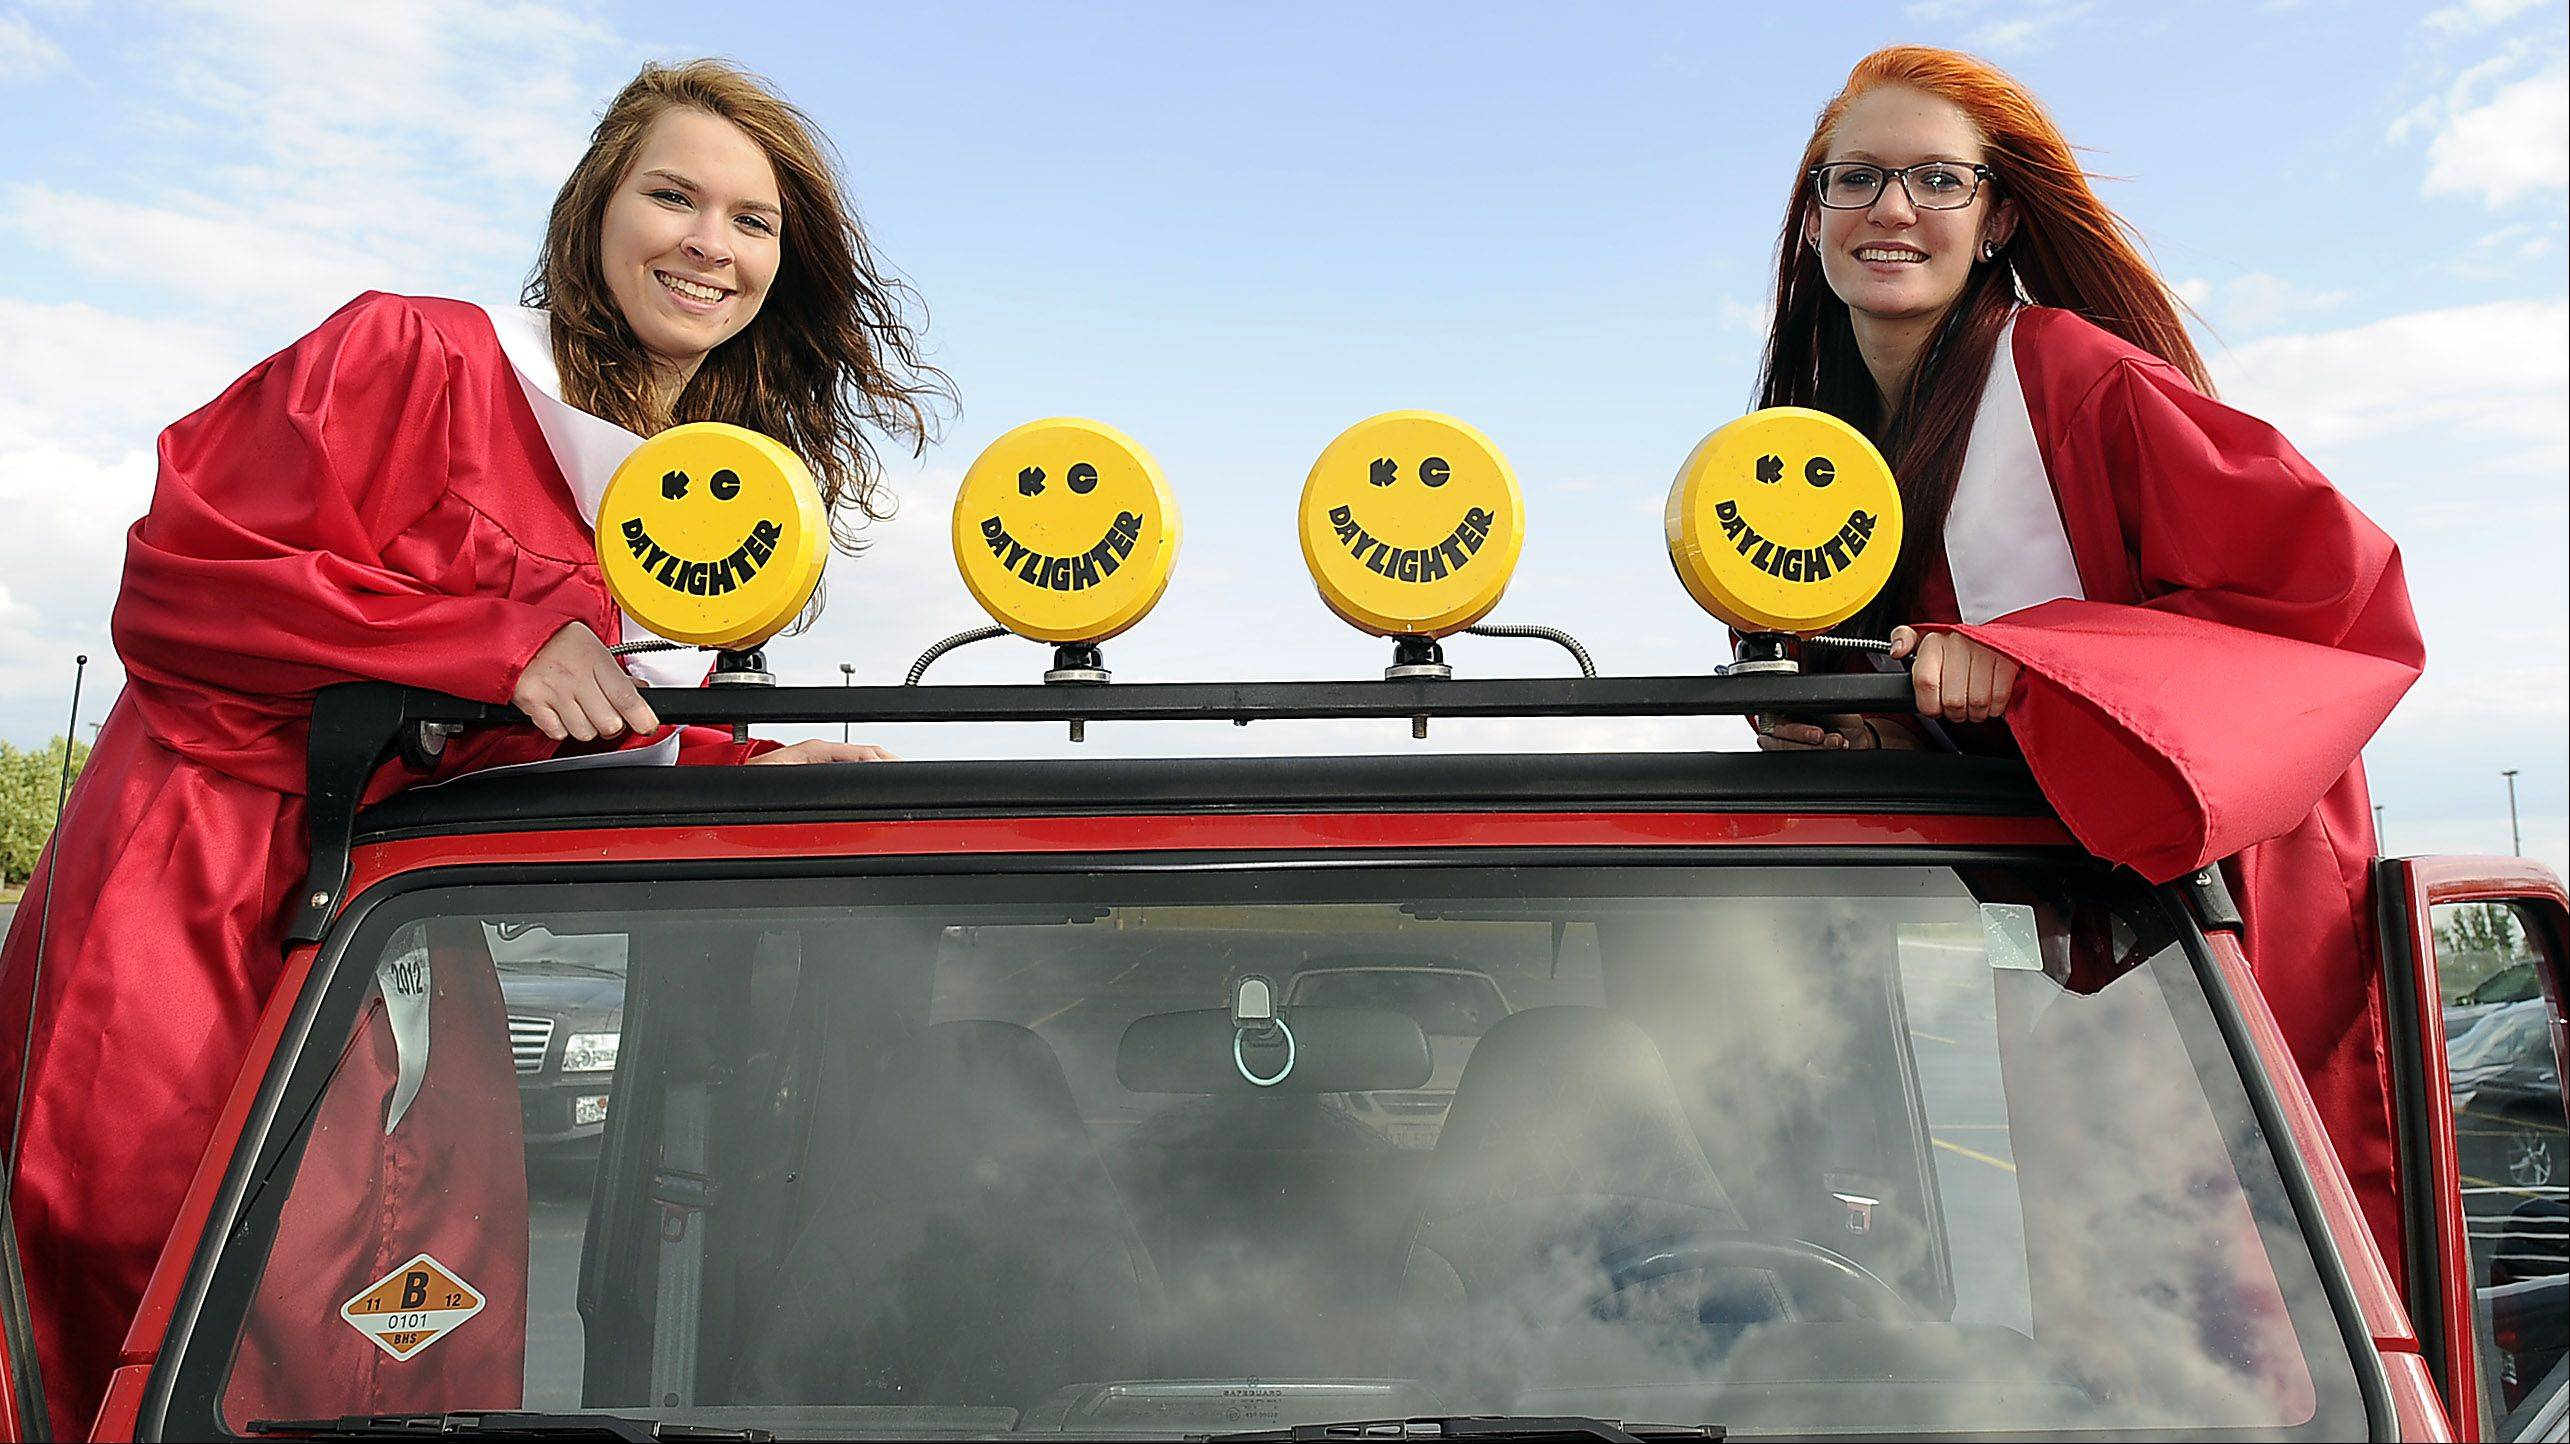 Barrington High School soon-to-be graduates Emily Clampitt and Elisabeth Paladino have a little fun in the parking lot before their graduation at Willow Creek Community Church on Friday.